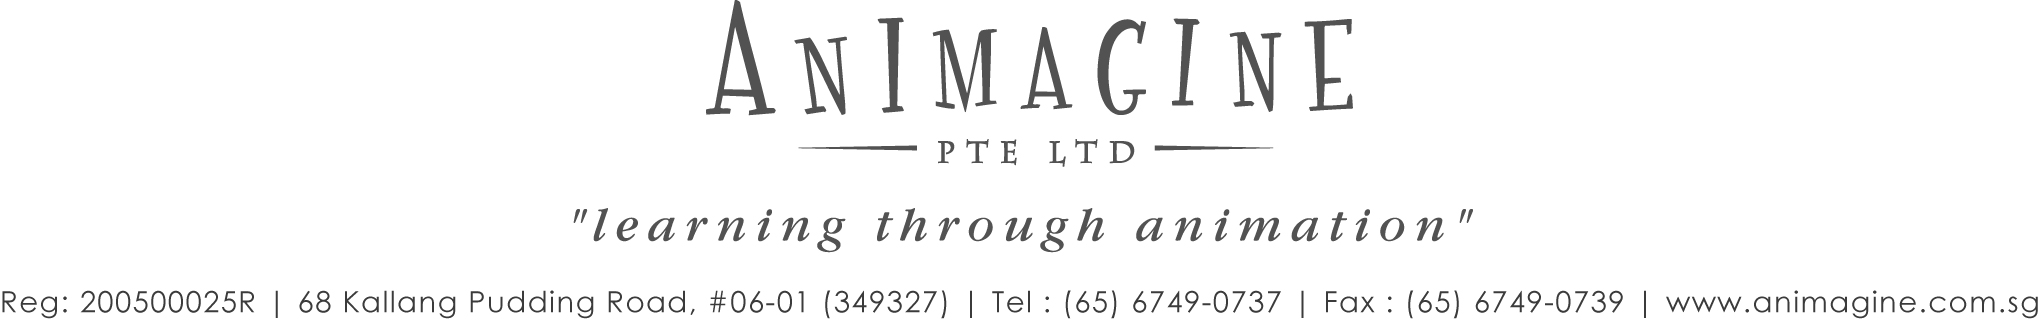 Animagine Pte Ltd